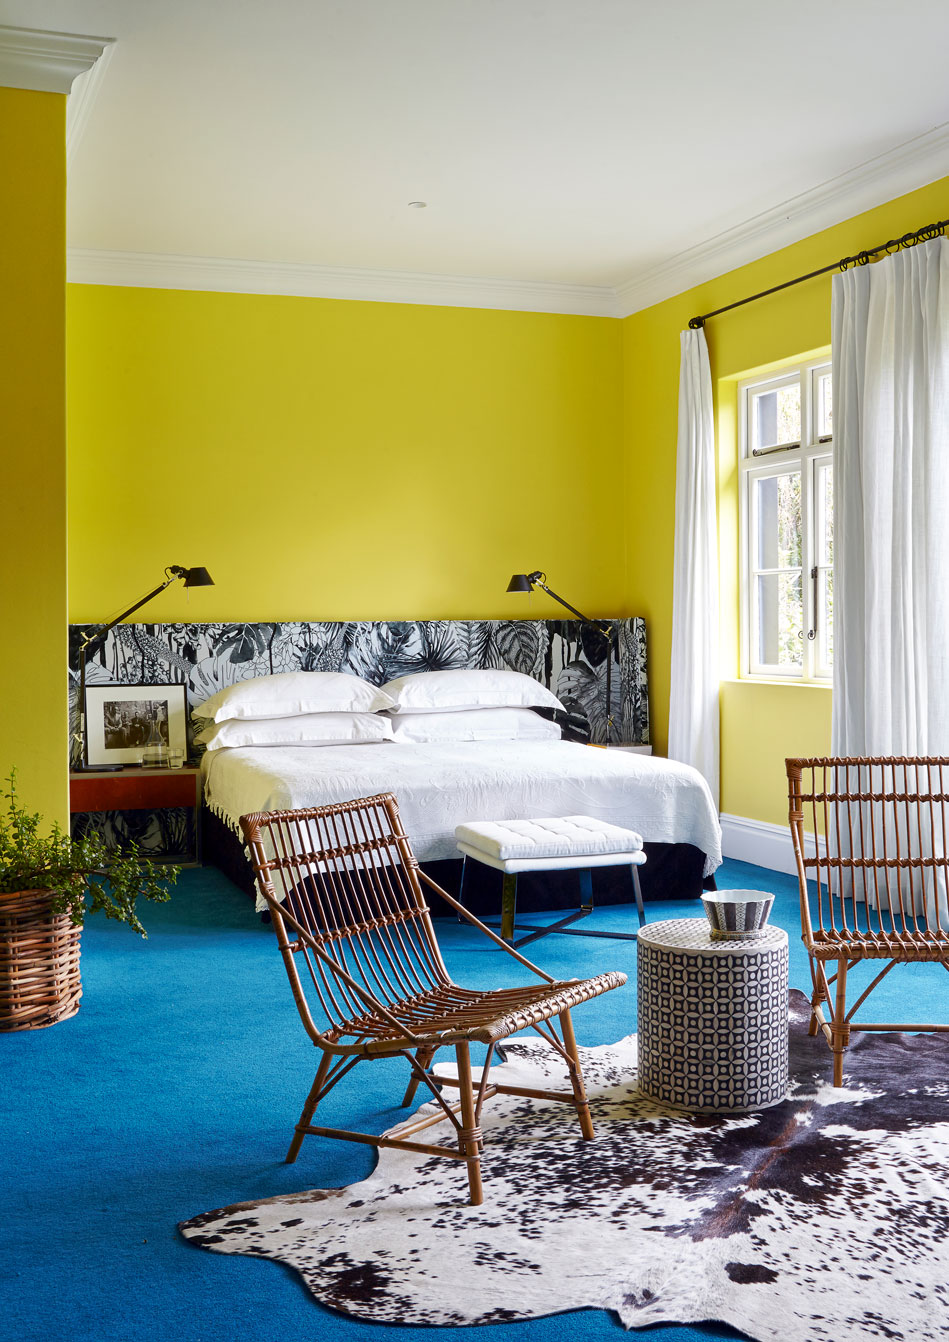 The guest suite features a custom made headboard upholstered in Christian Lacroix fabric, vintage bamboo chairs and a Nguni skin on the floor. 